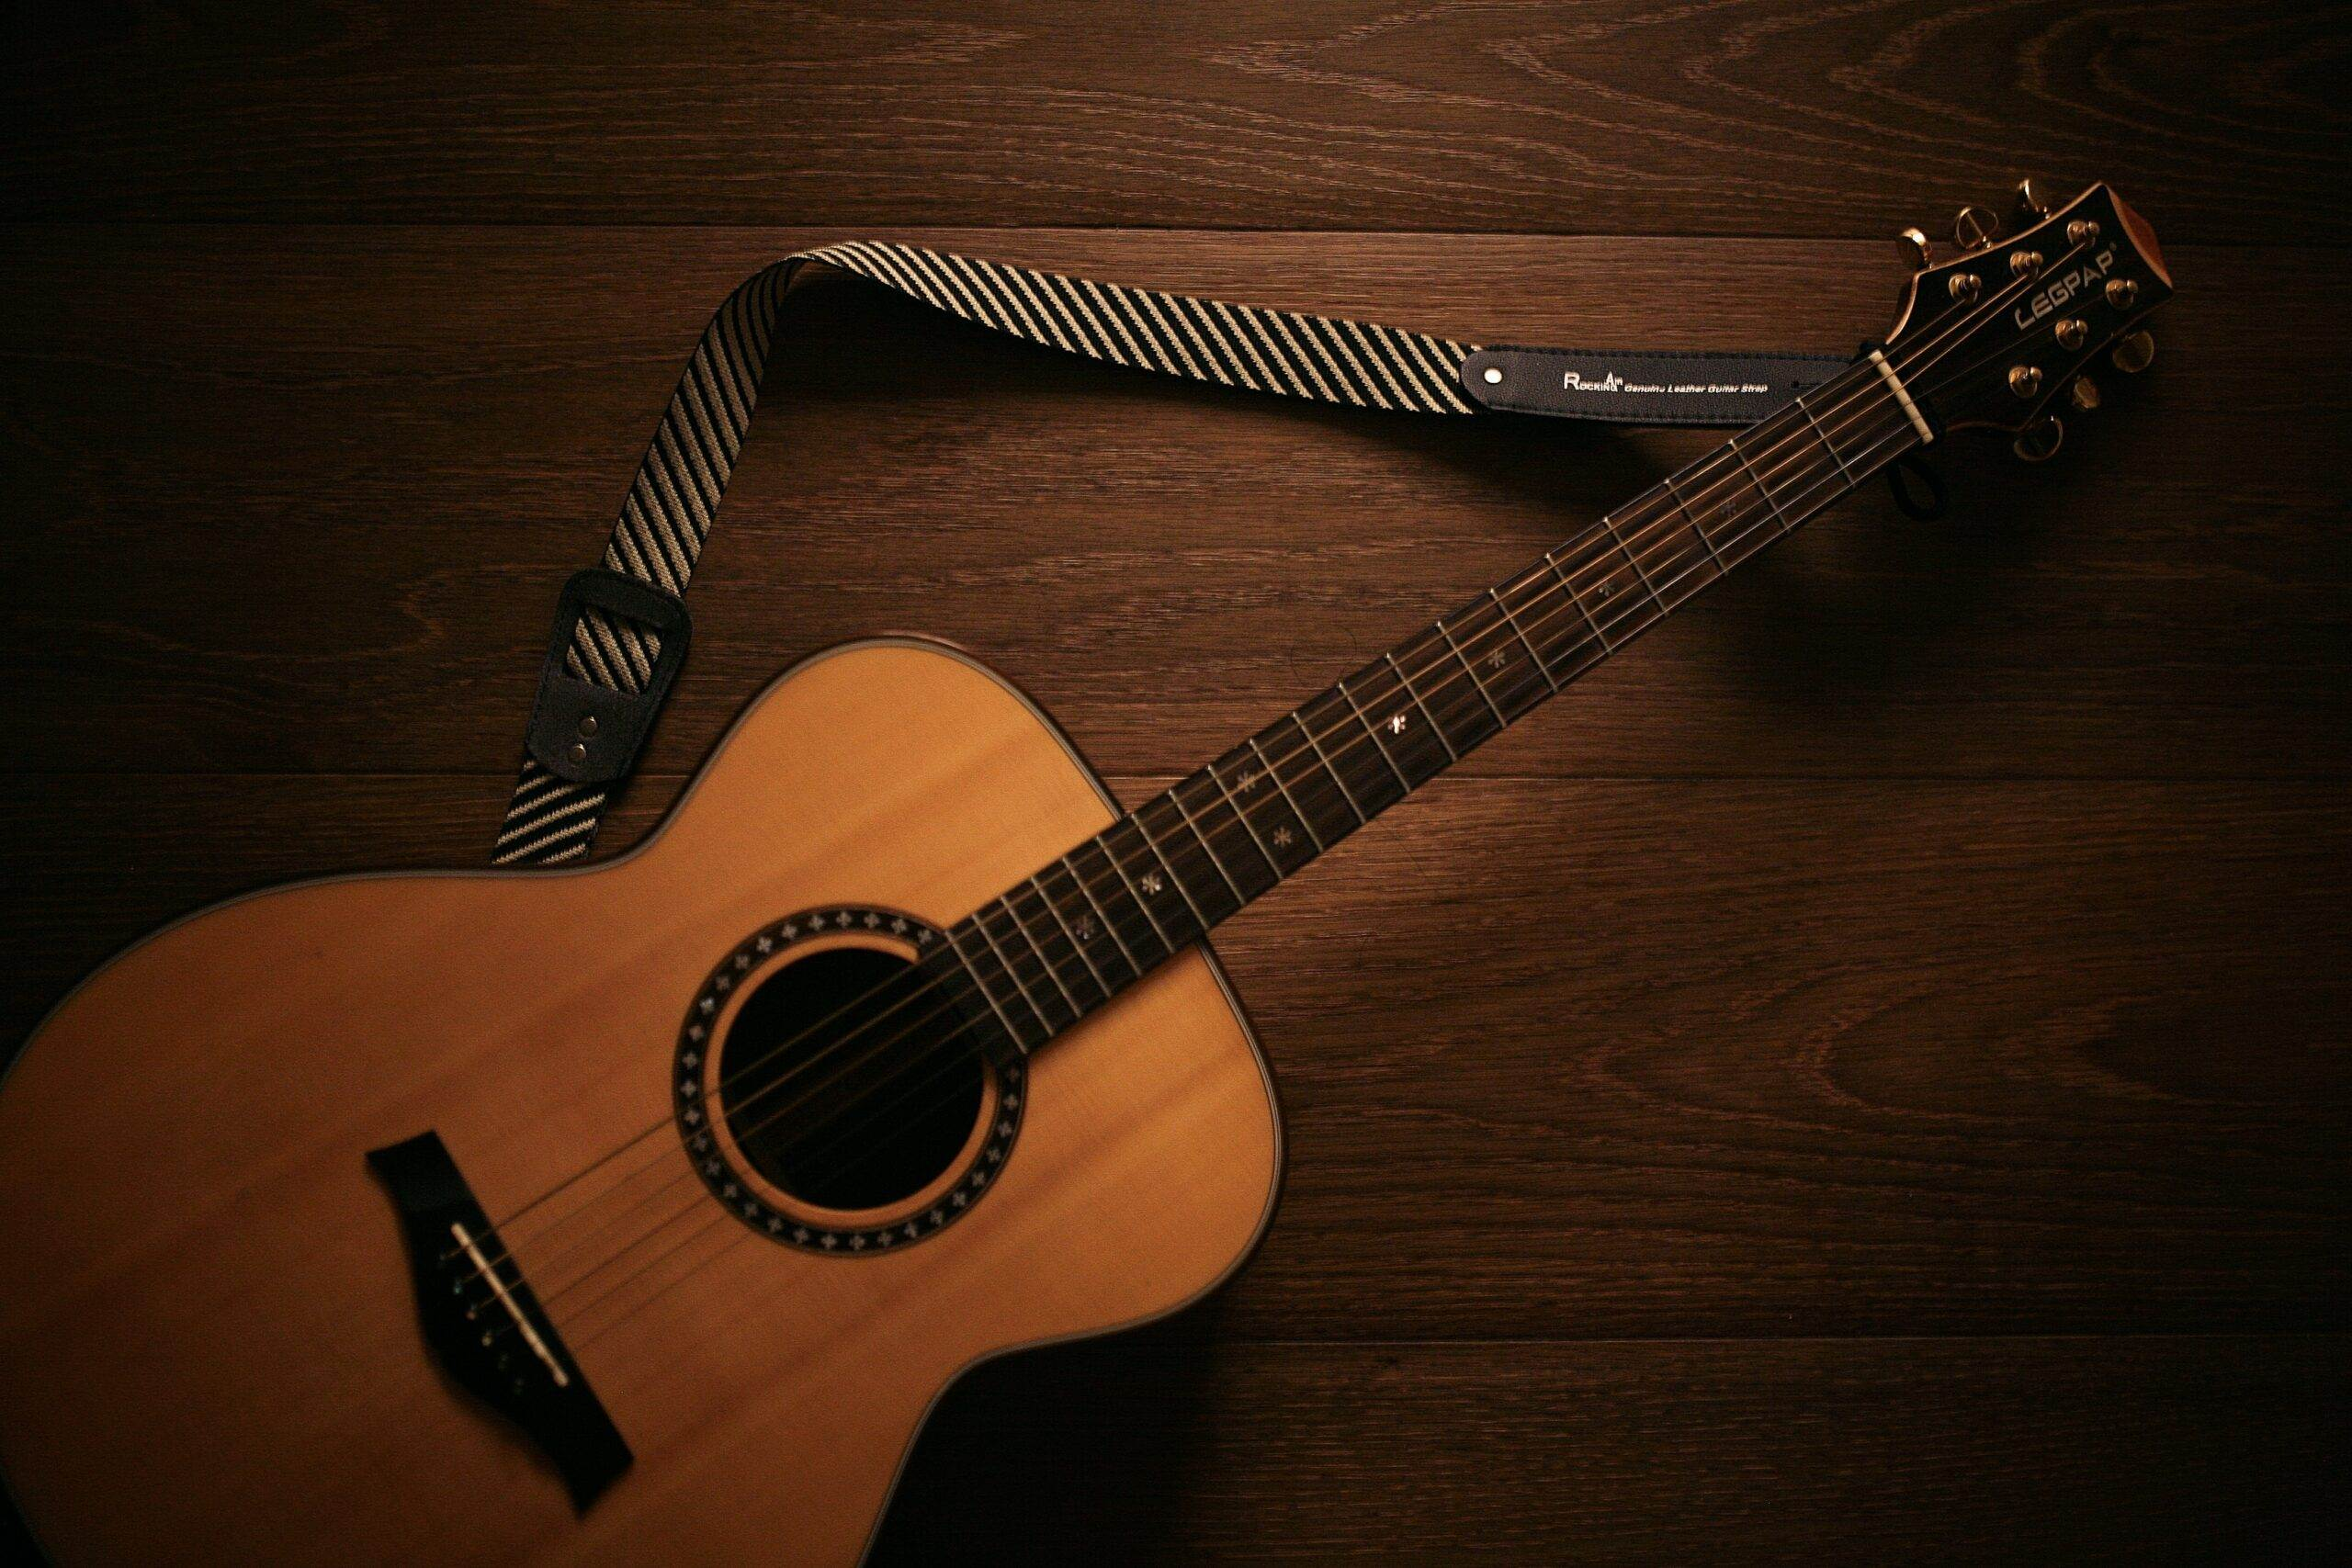 Brown Acoustic Guitar   Best Way To Learn Guitar At Home Today (11 Easy Tips)